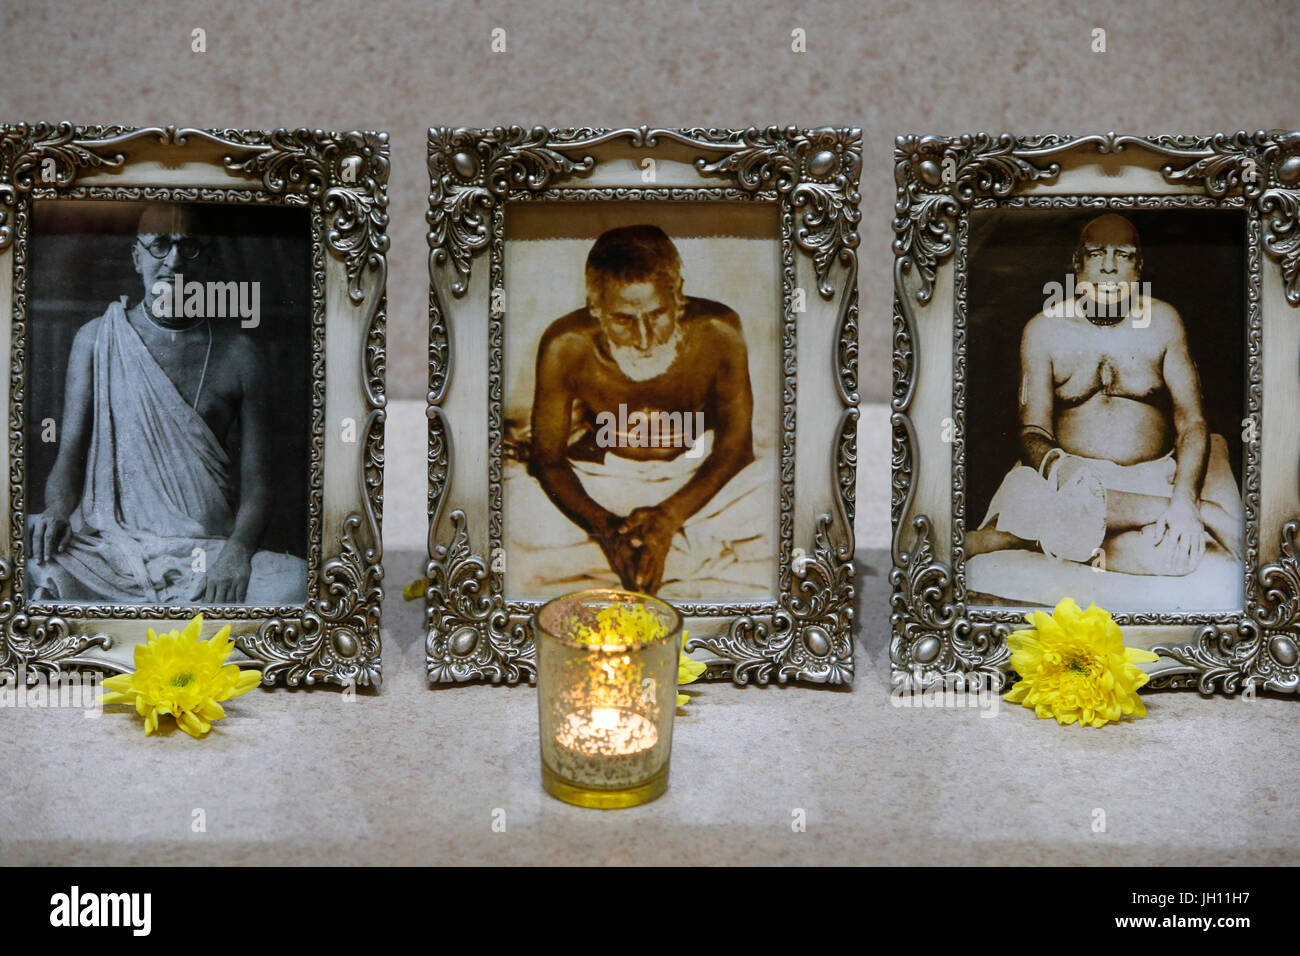 ISKCON Leicester. Photographs of gurus. United kingdom. Stock Photo